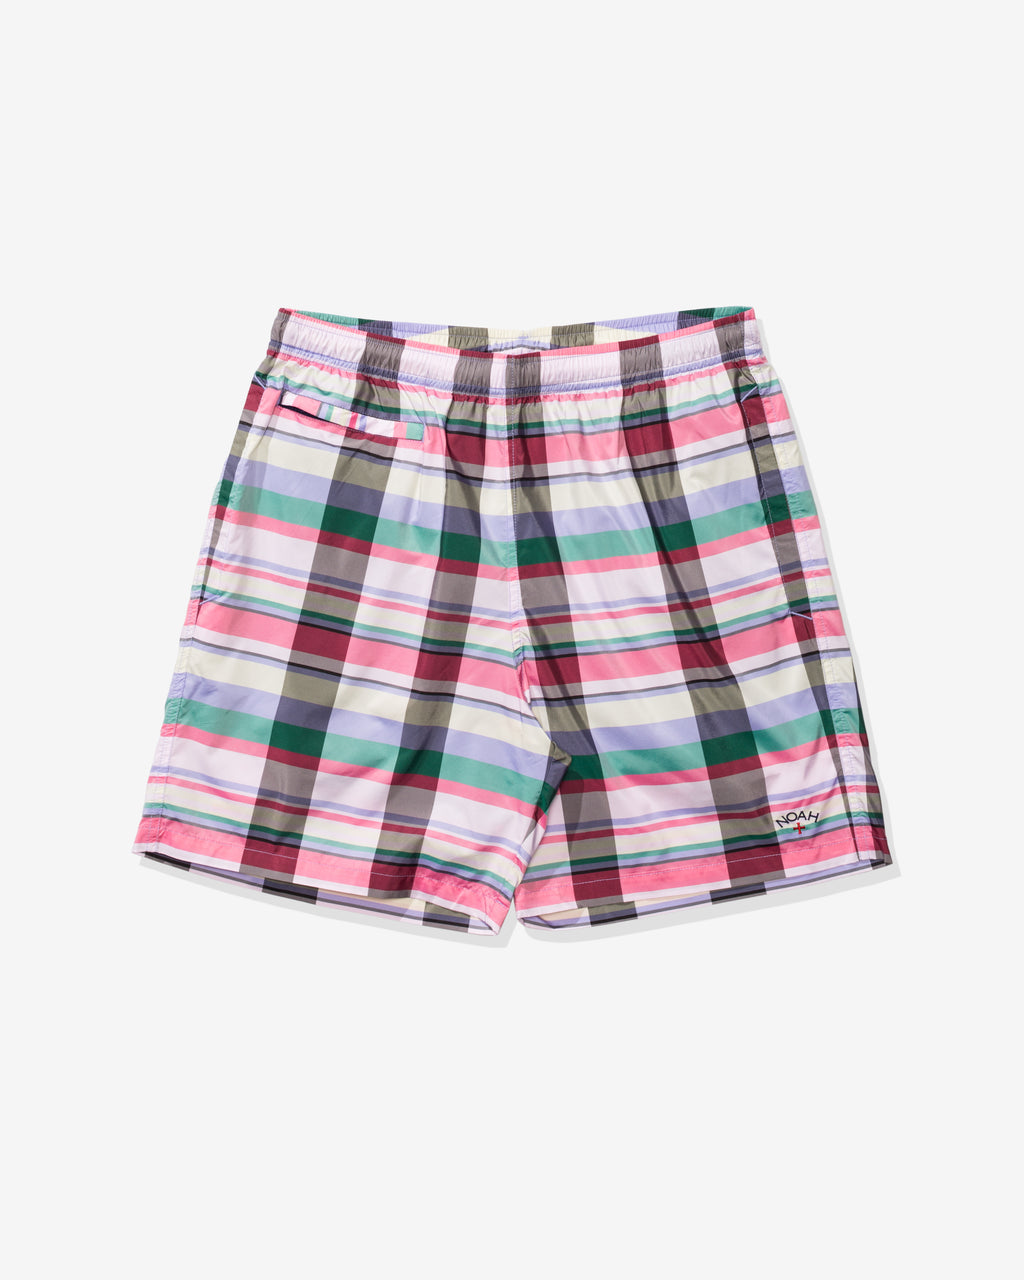 ADIDAS X NOAH TECH SHORT - MULTCO